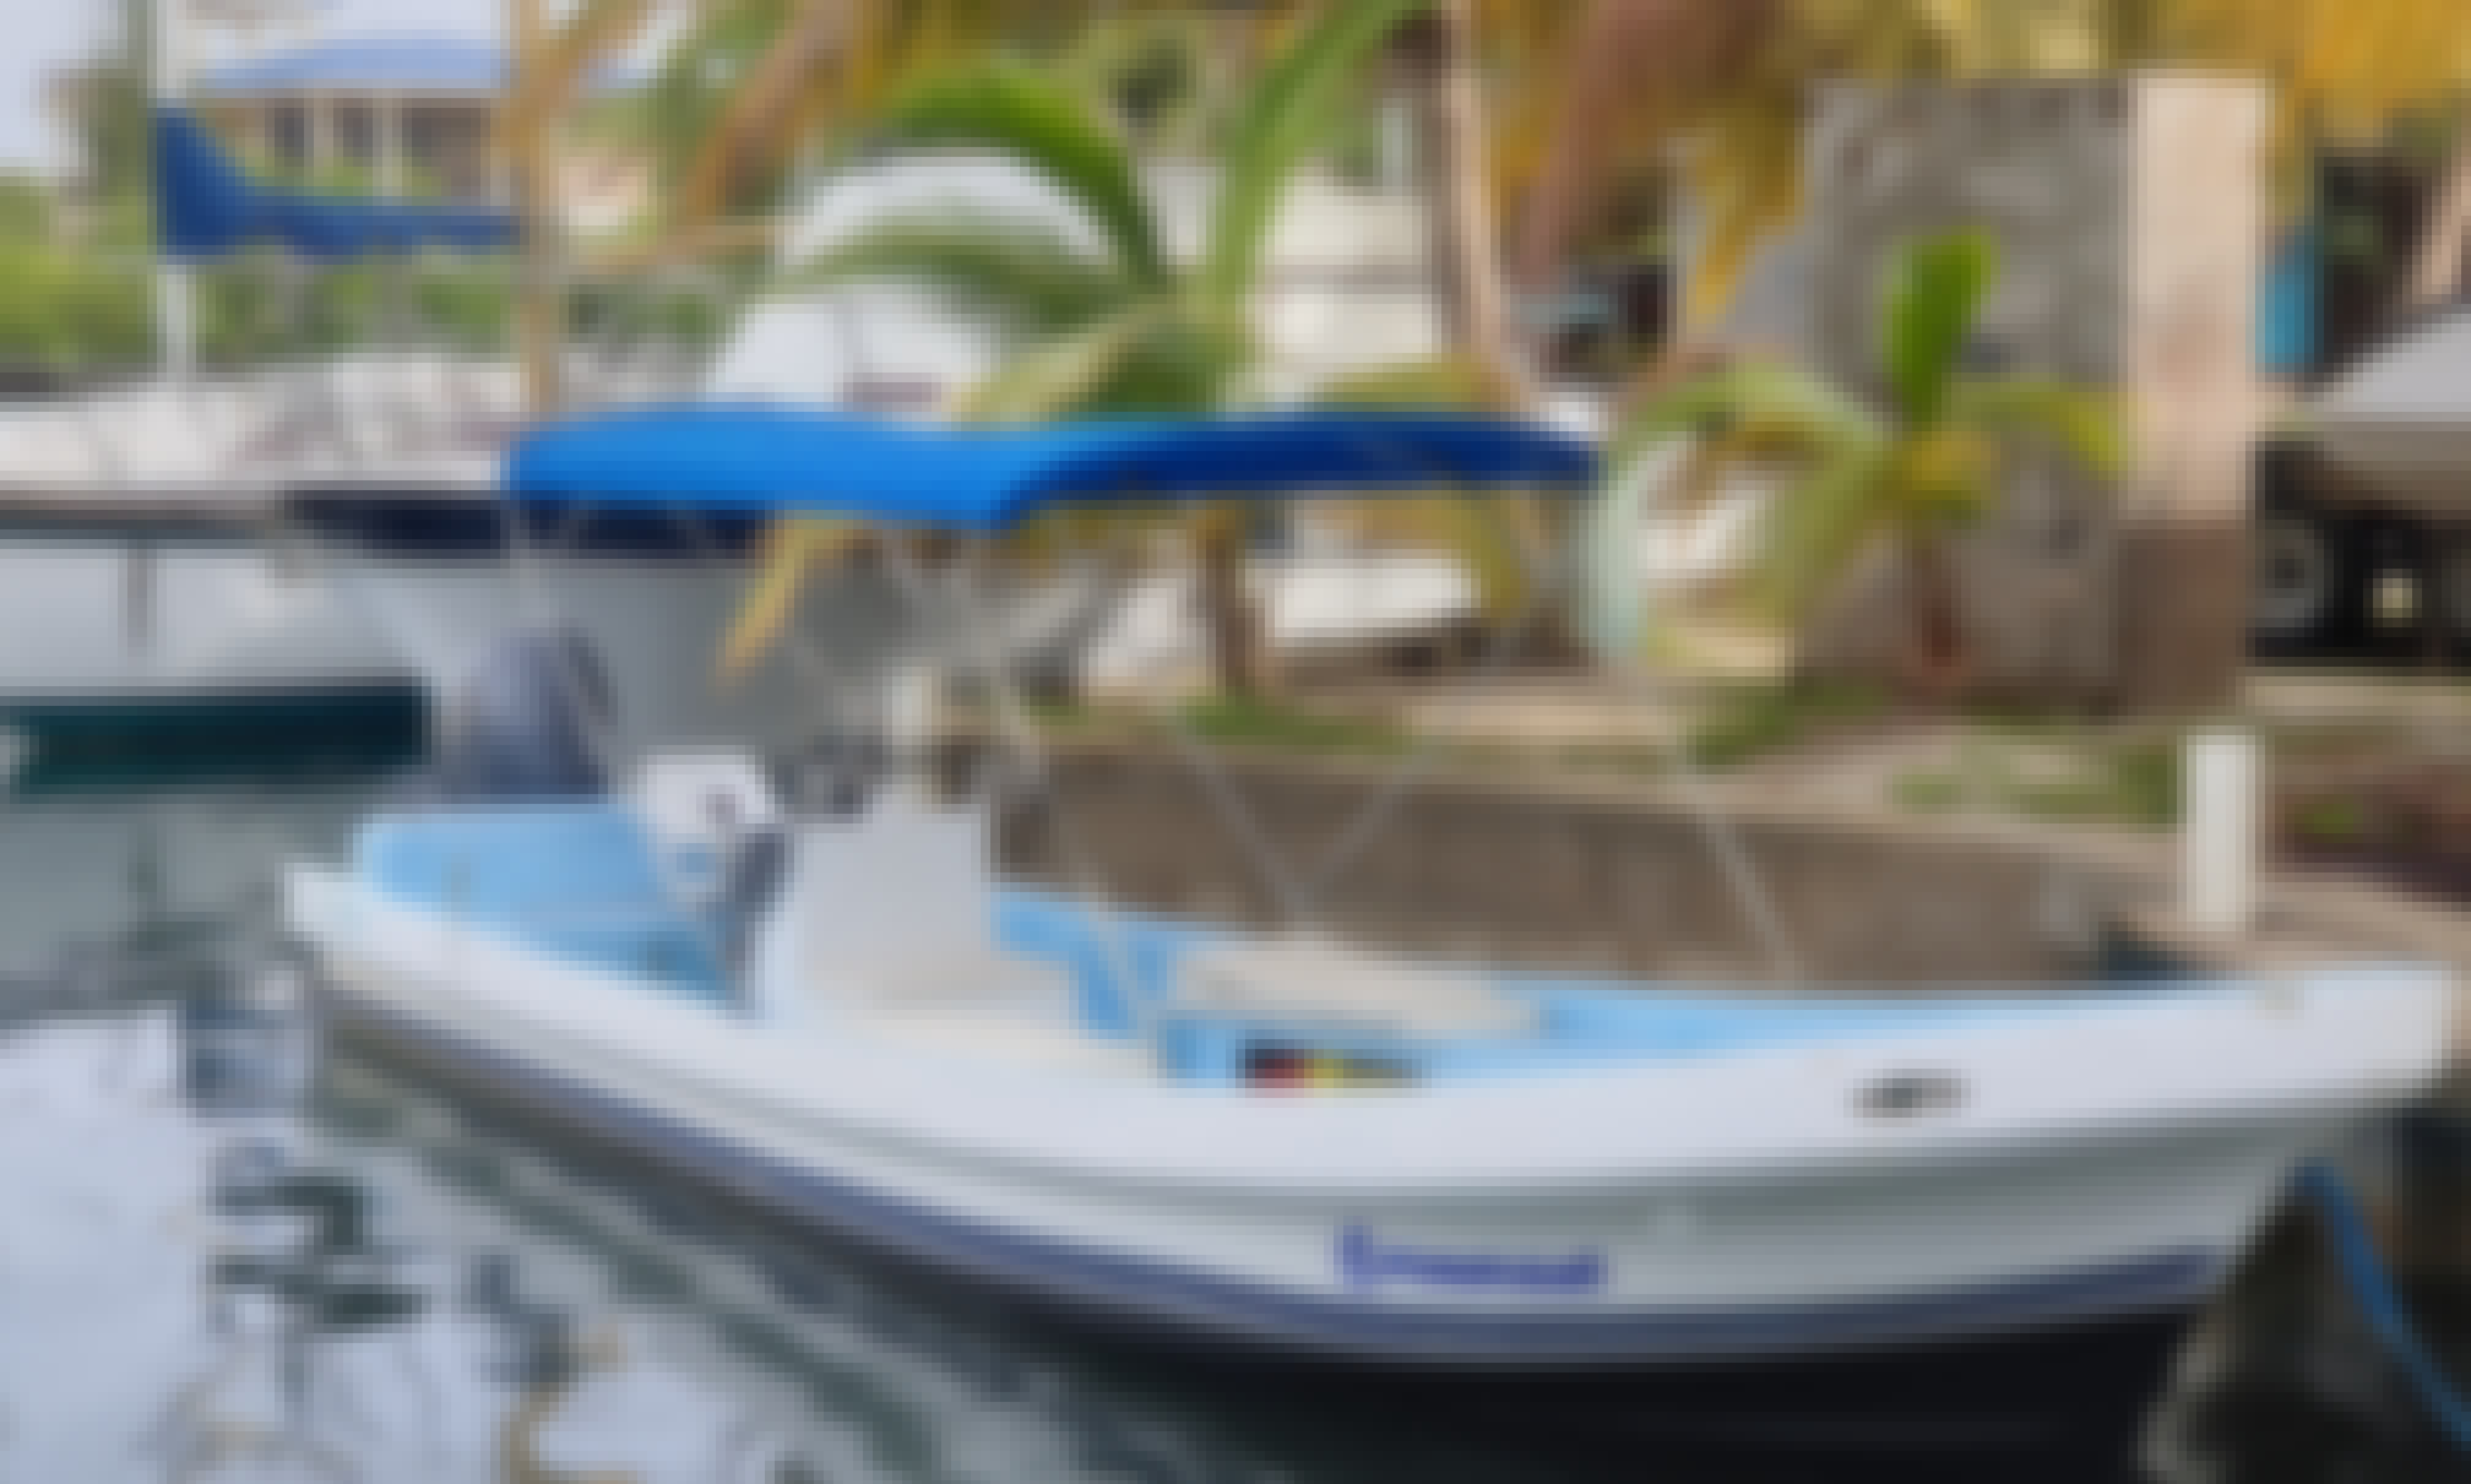 Power Boat Tour for 20 People in Placencia, Belize